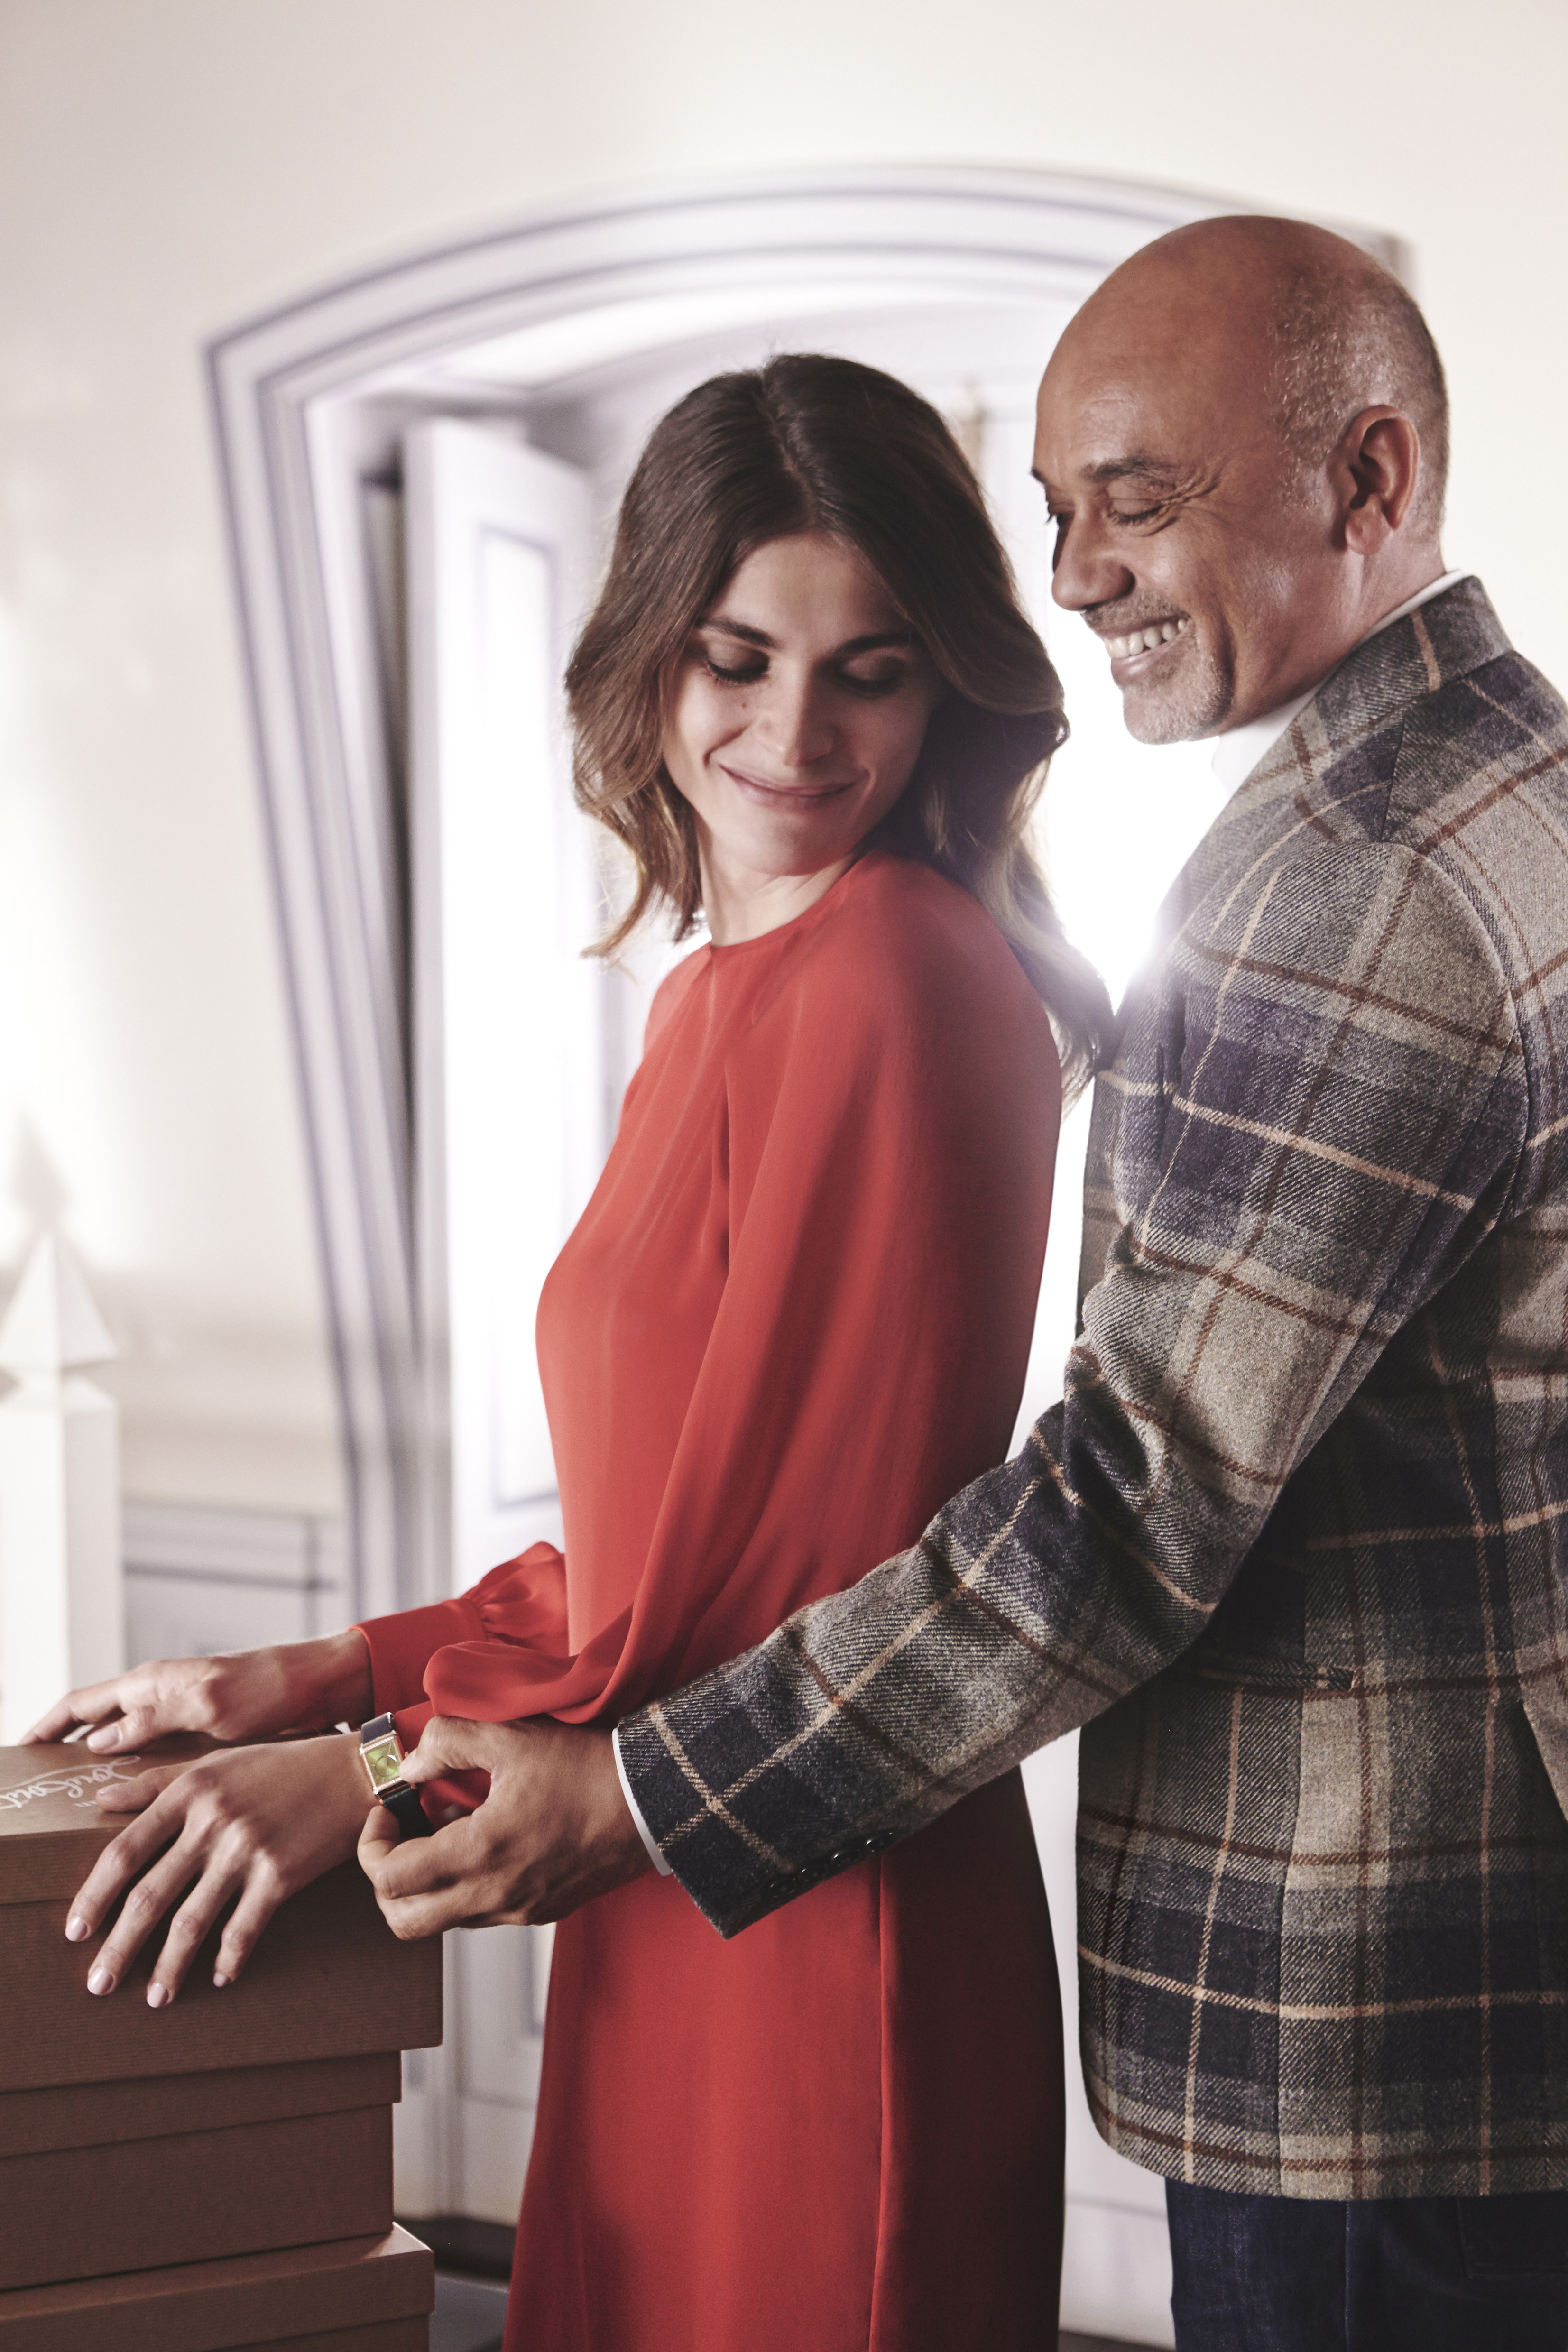 """Elisa Sednaoui and Christian Louboutin during the making of """"Reverso by Christian Louboutin"""""""